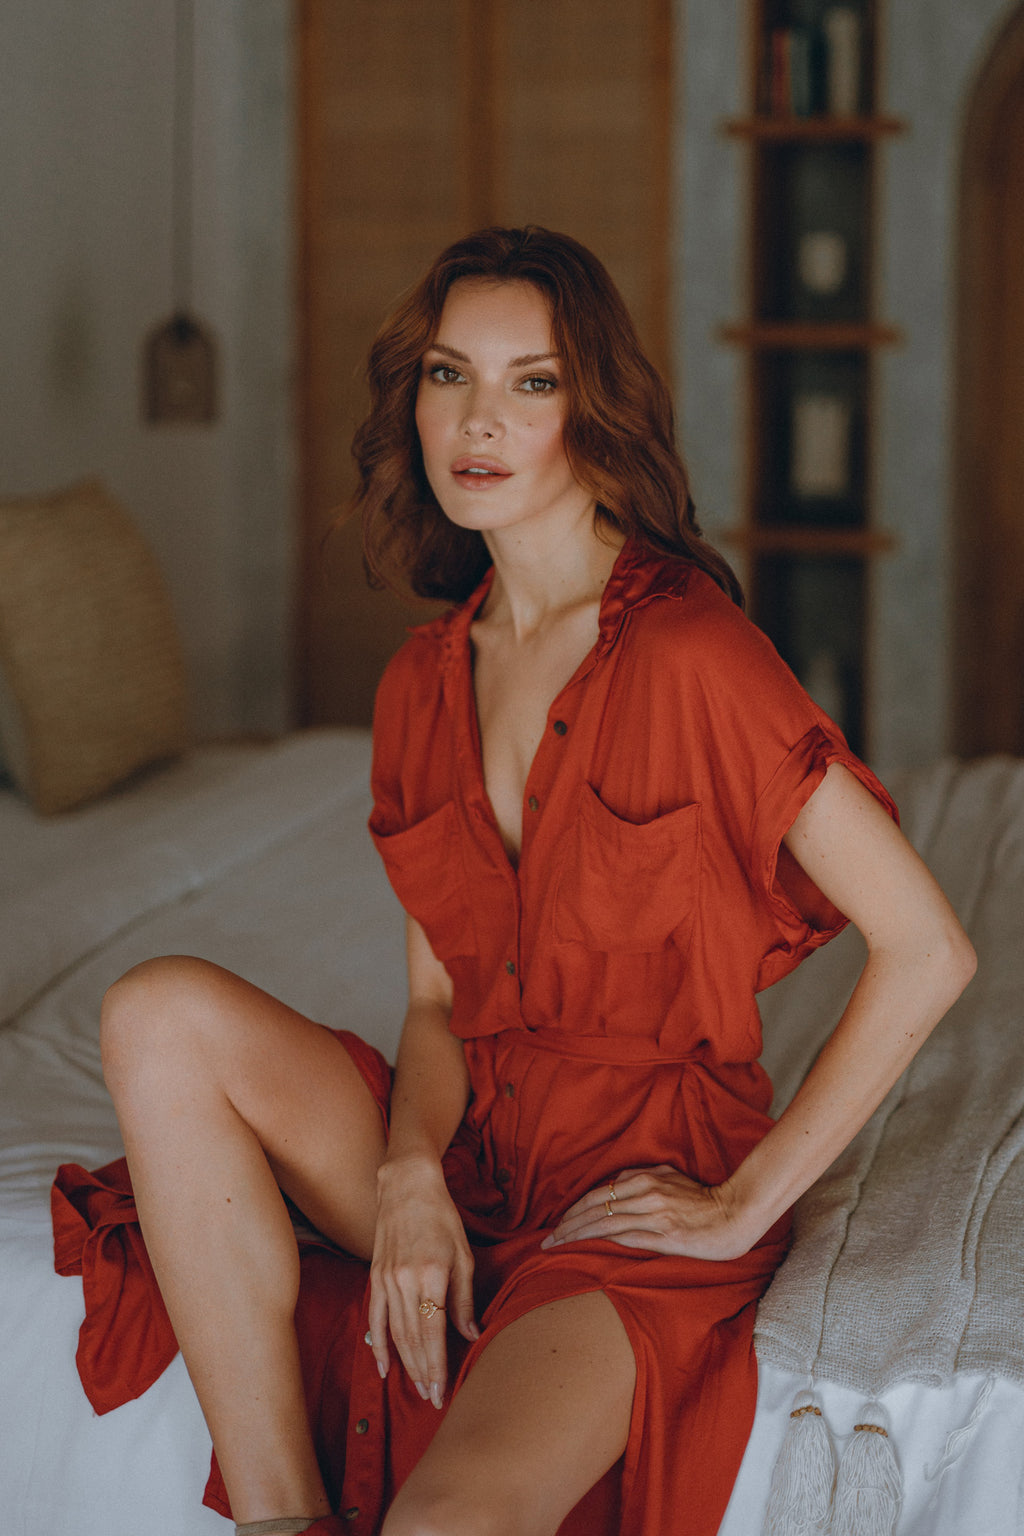 model sitting on bed wearing a red classic shirt dress